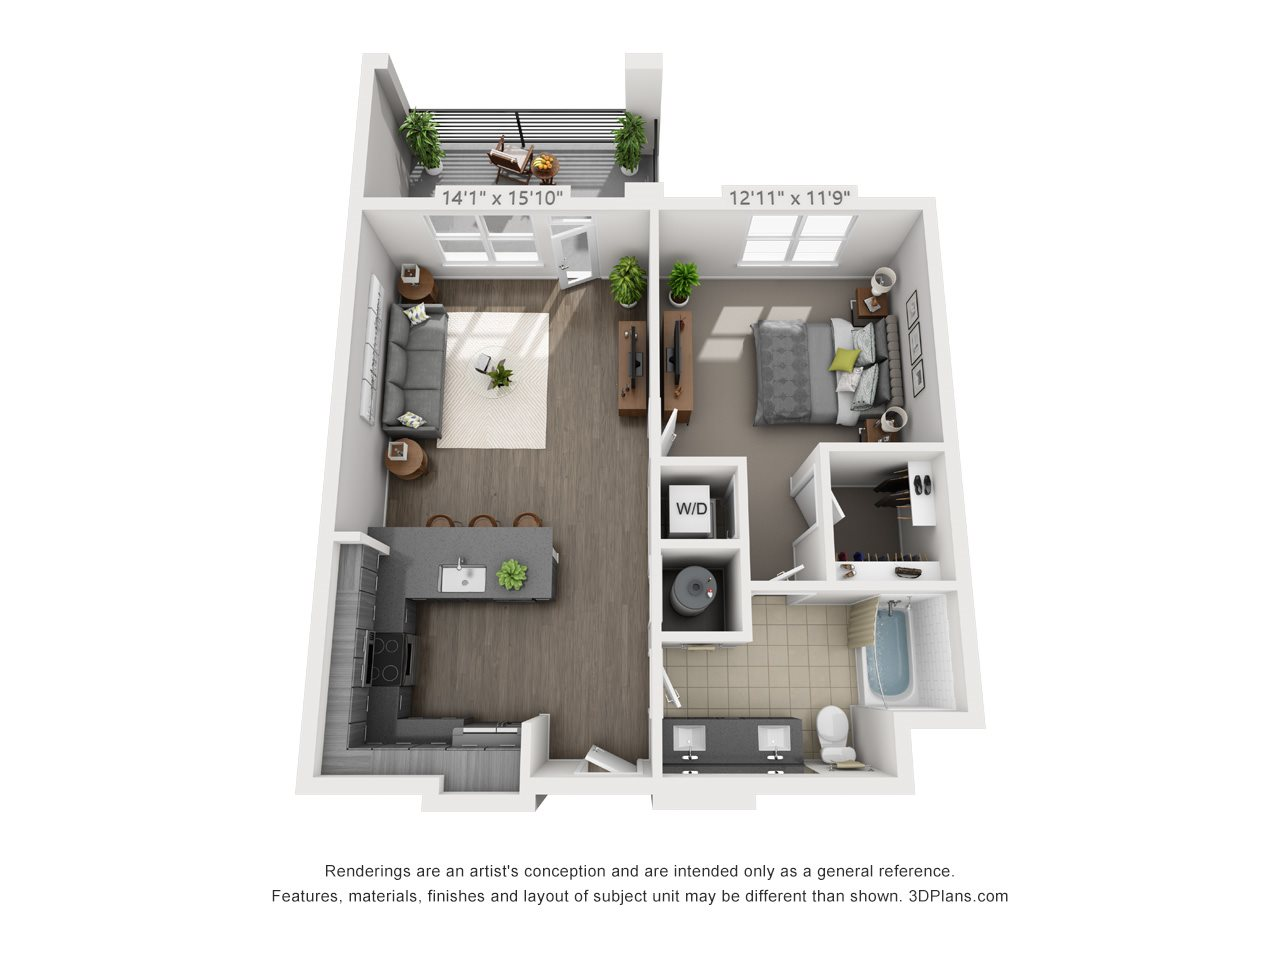 A4B 1 BEDROOM/1 BATH/ BALCONY Floor Plan 7